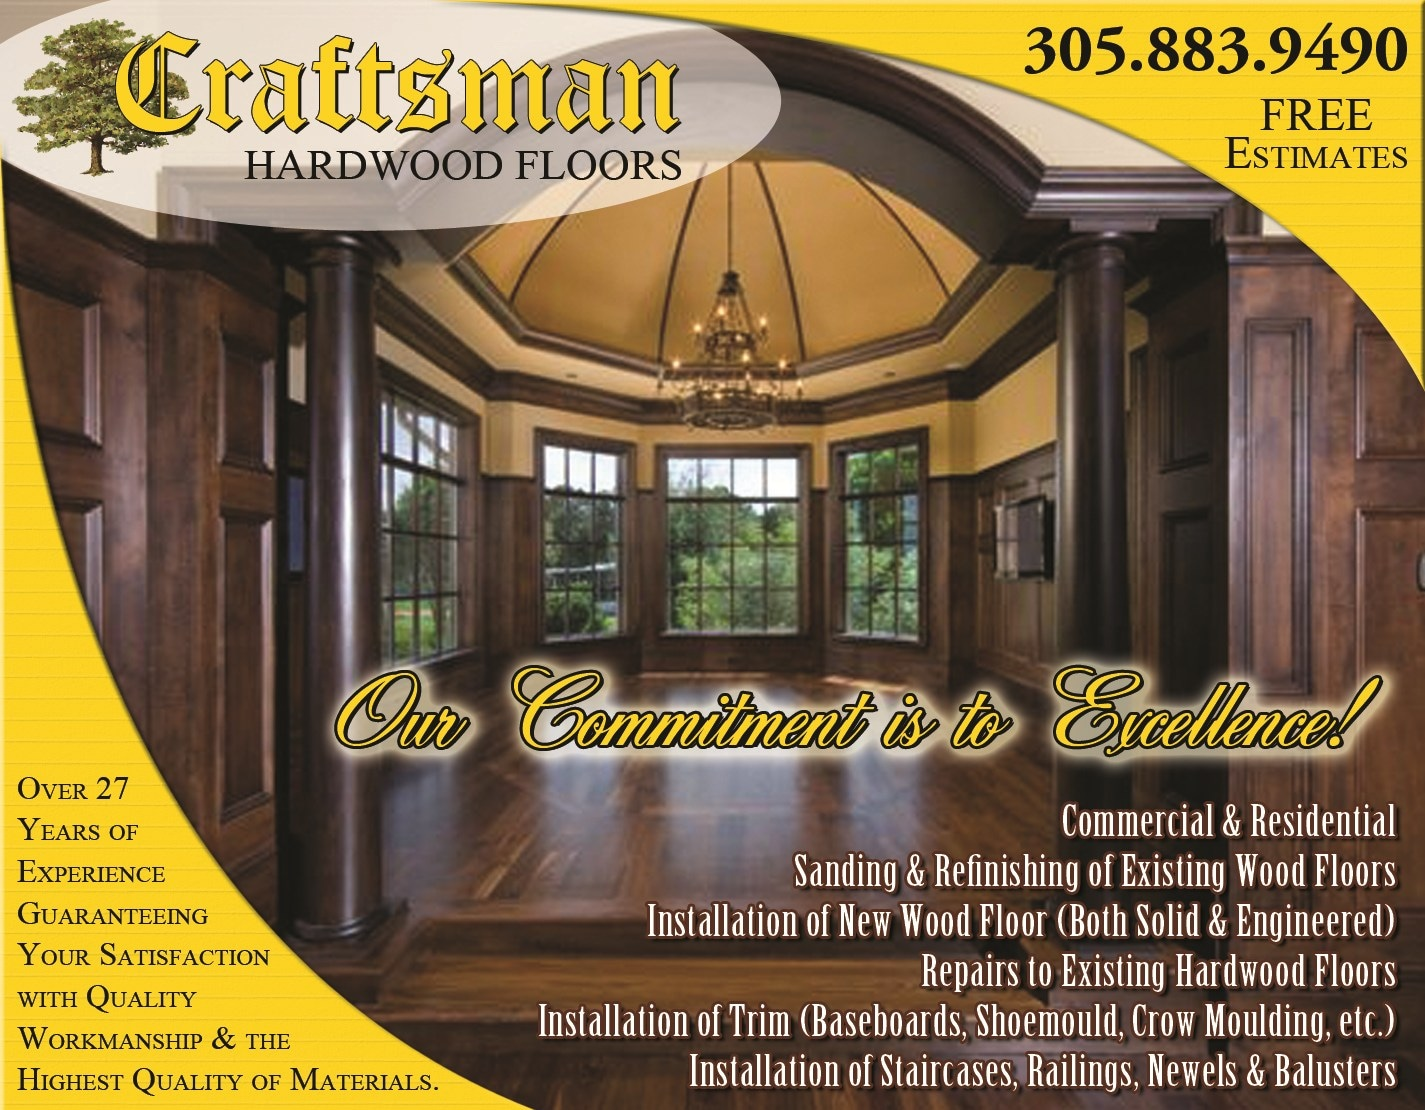 Craftsman Hardwood Floors